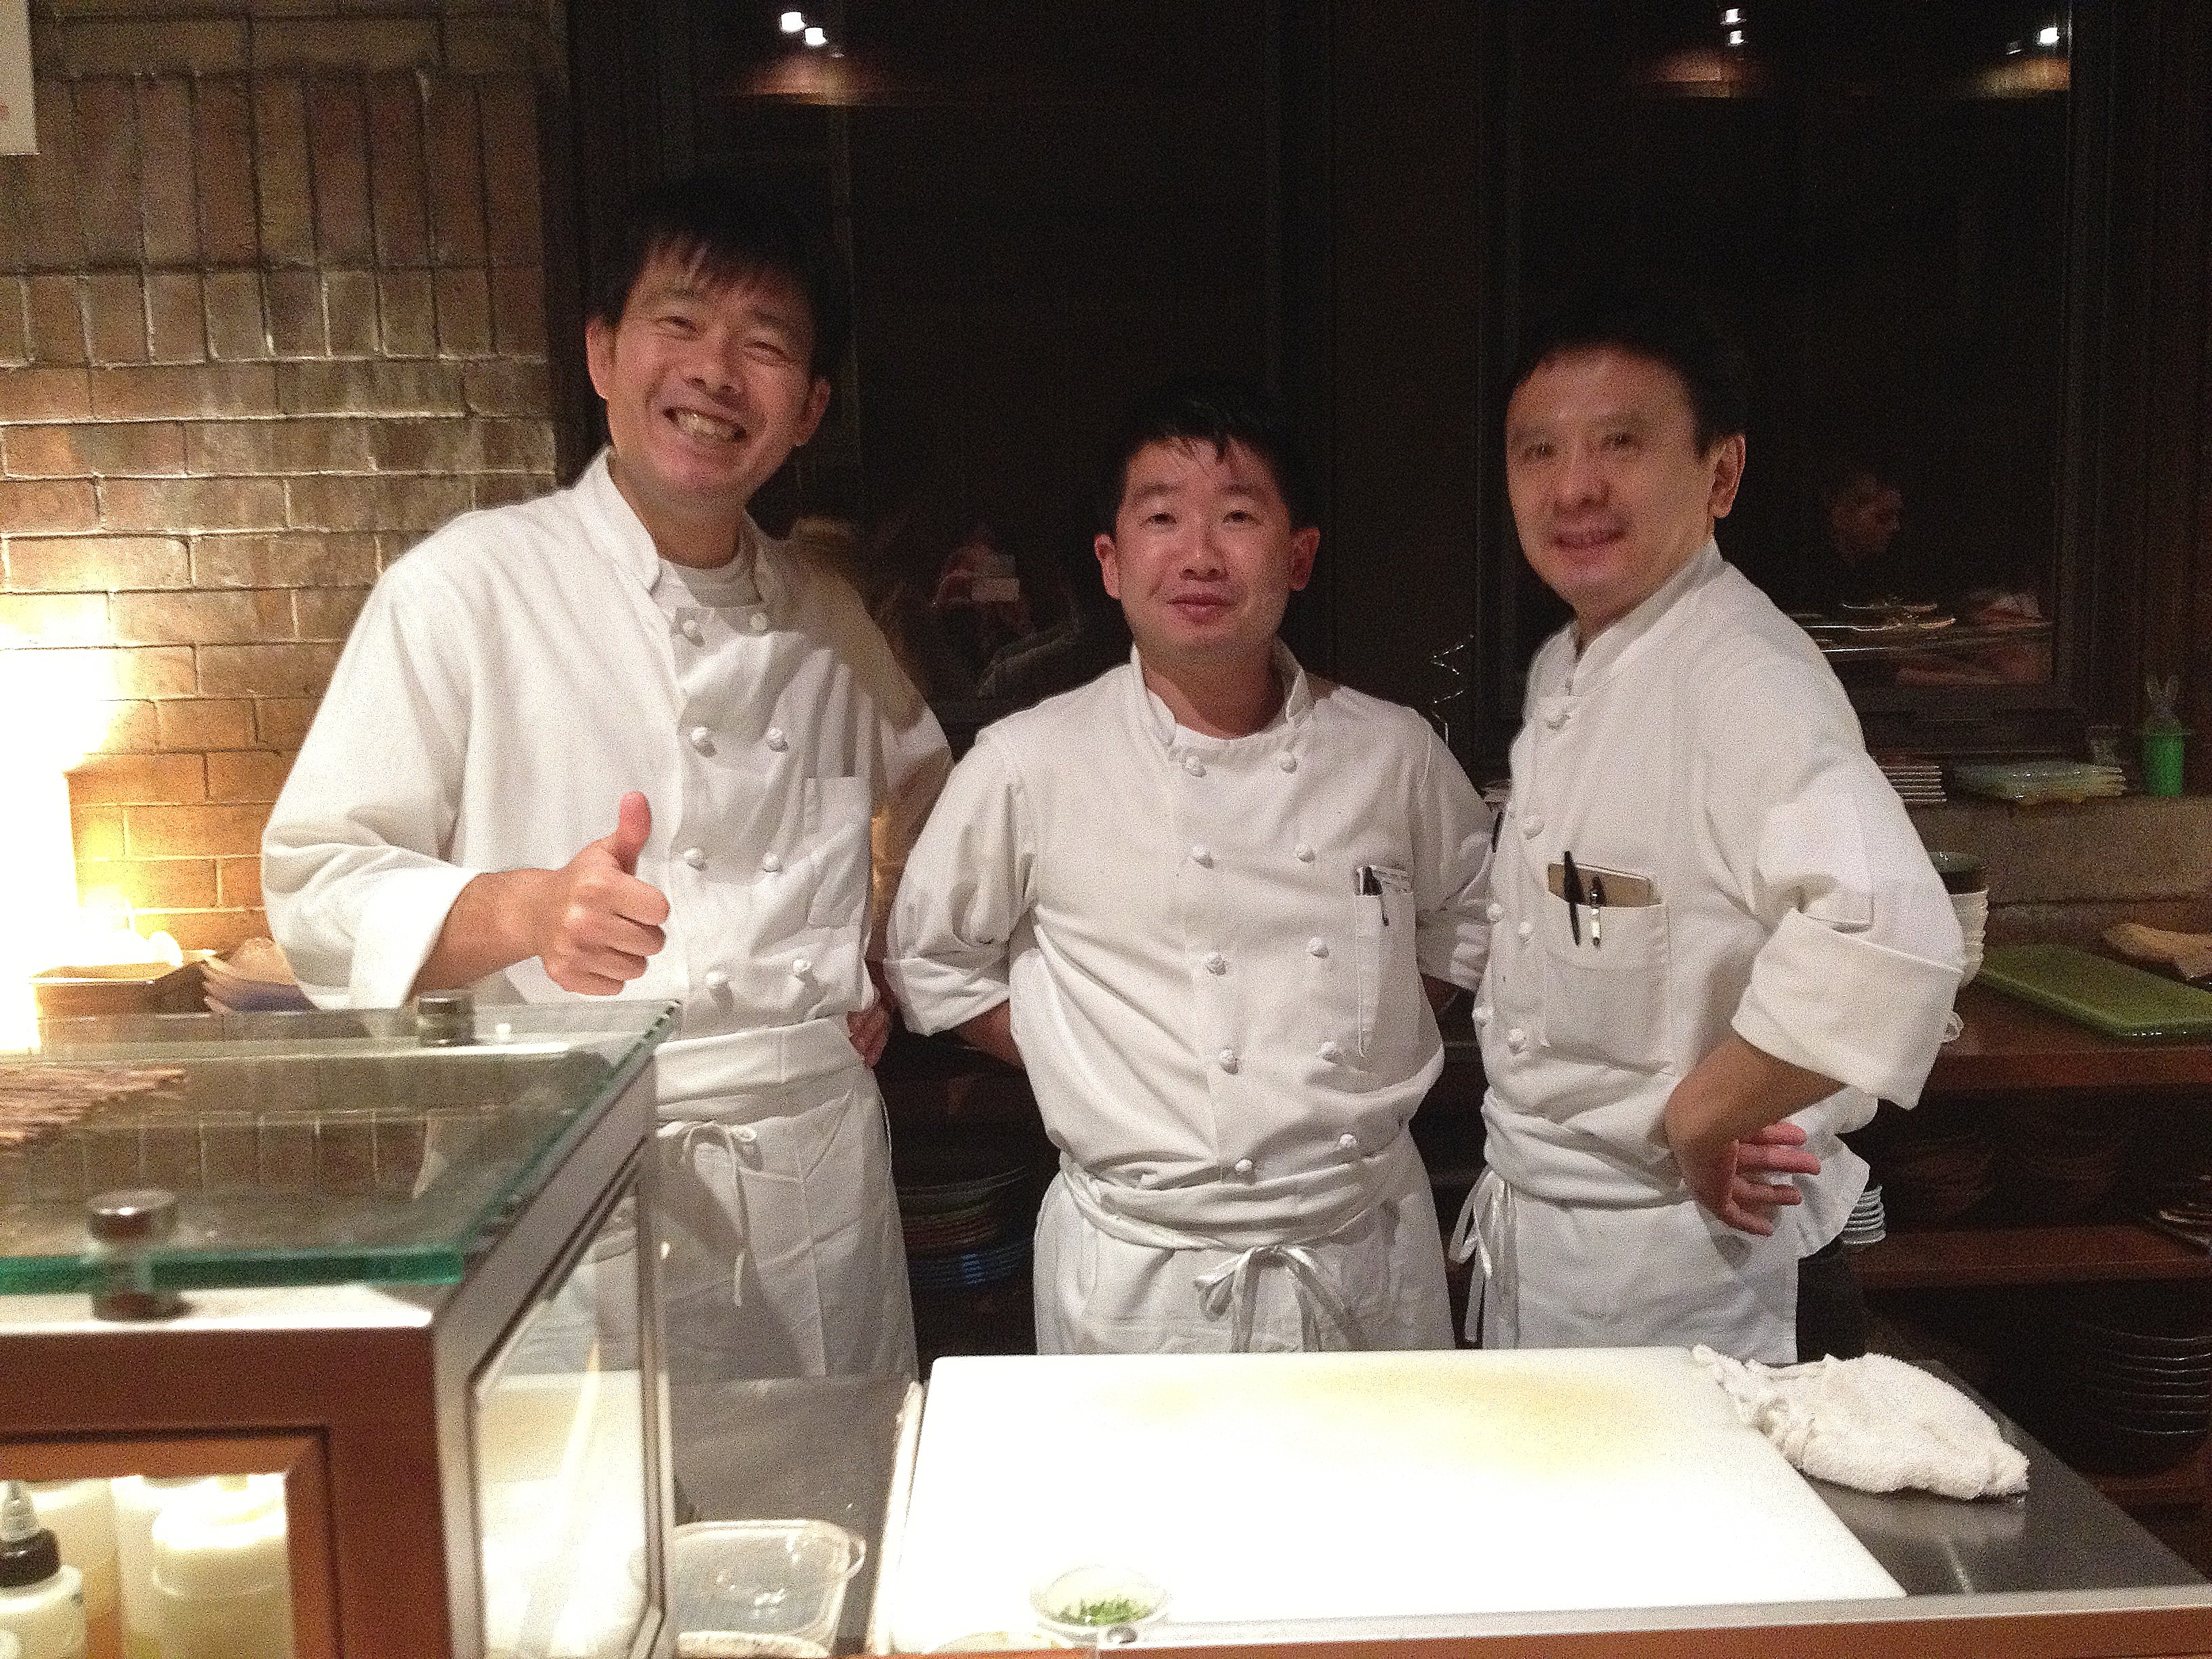 Three talented chefs!